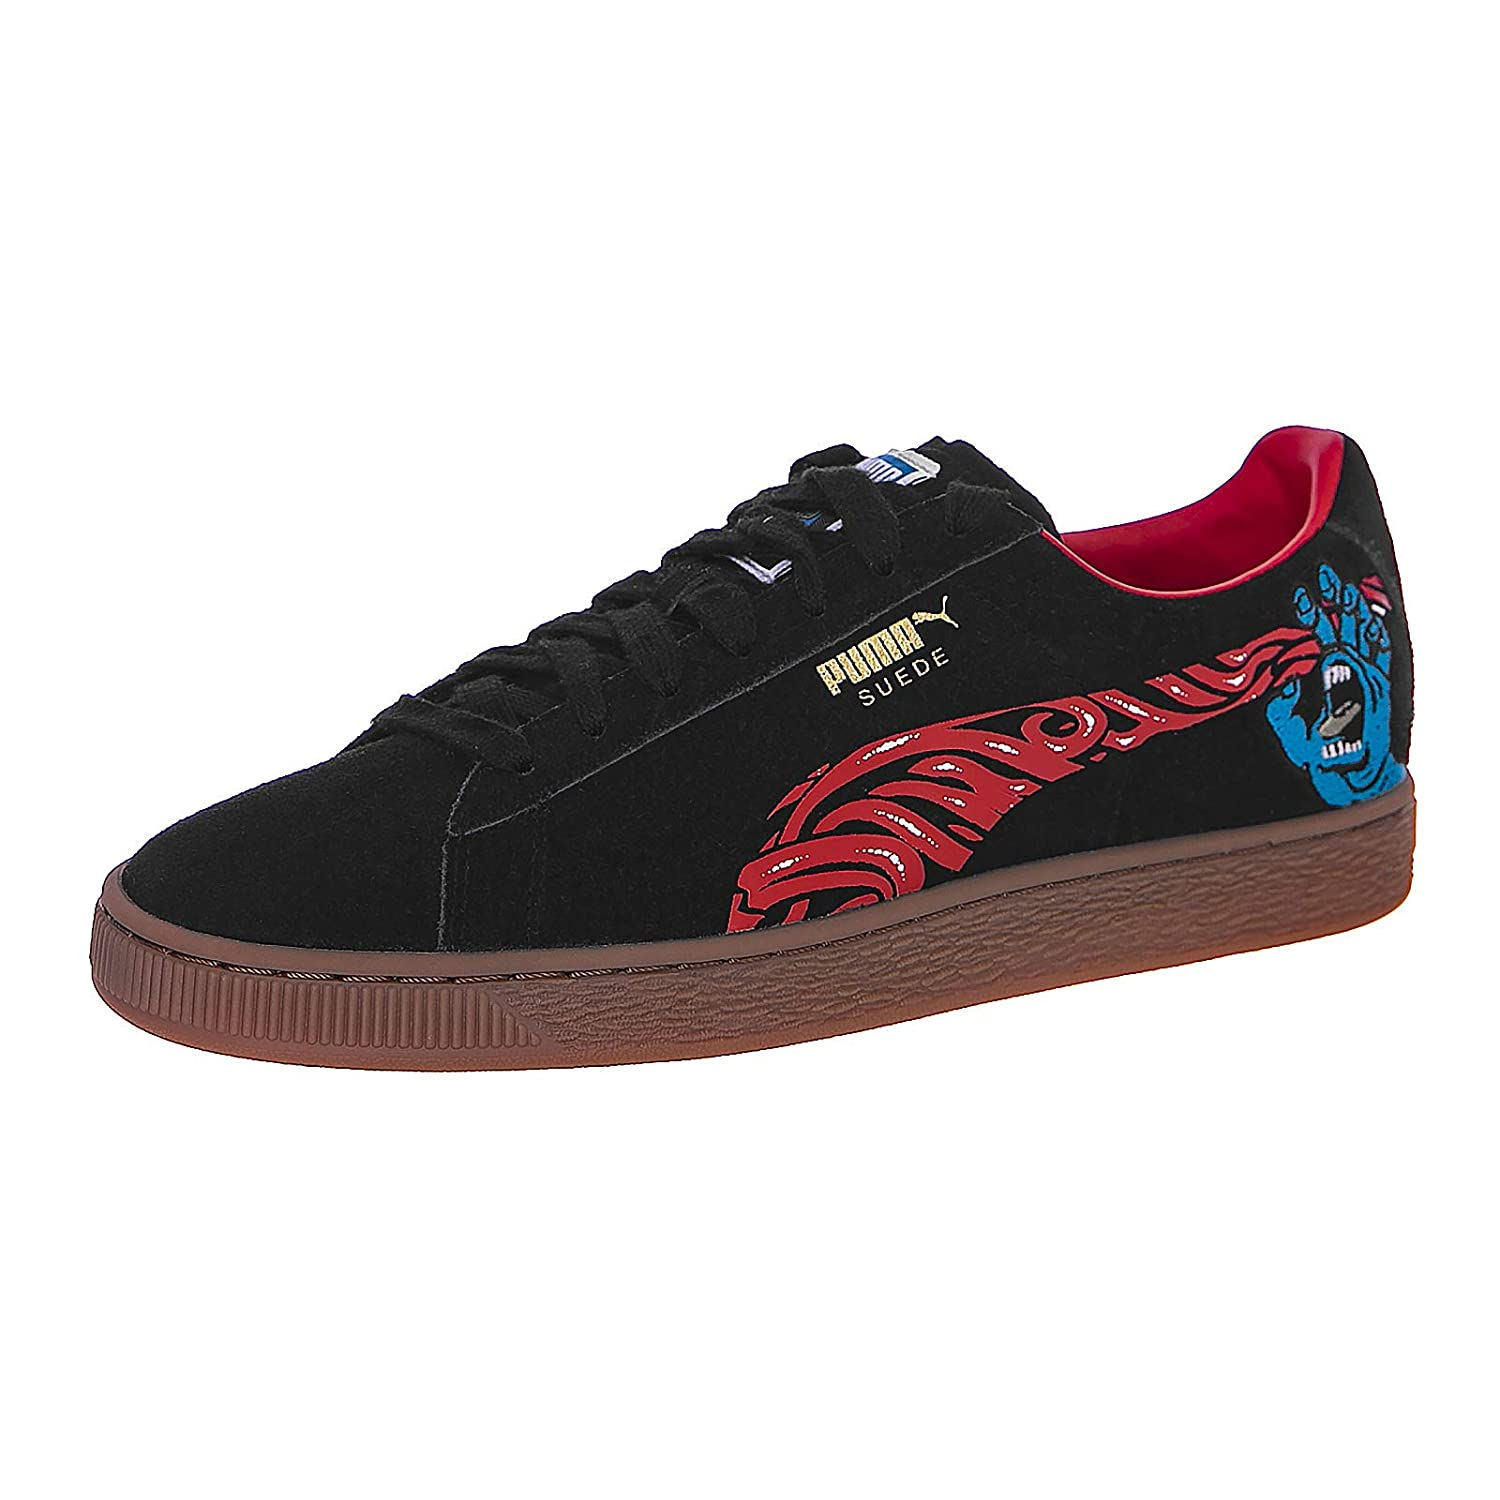 e4c6cefe269 Puma X Santa Cruz - Sneakers - Suede Classic Black (8 UK)  Amazon.co.uk   Shoes   Bags